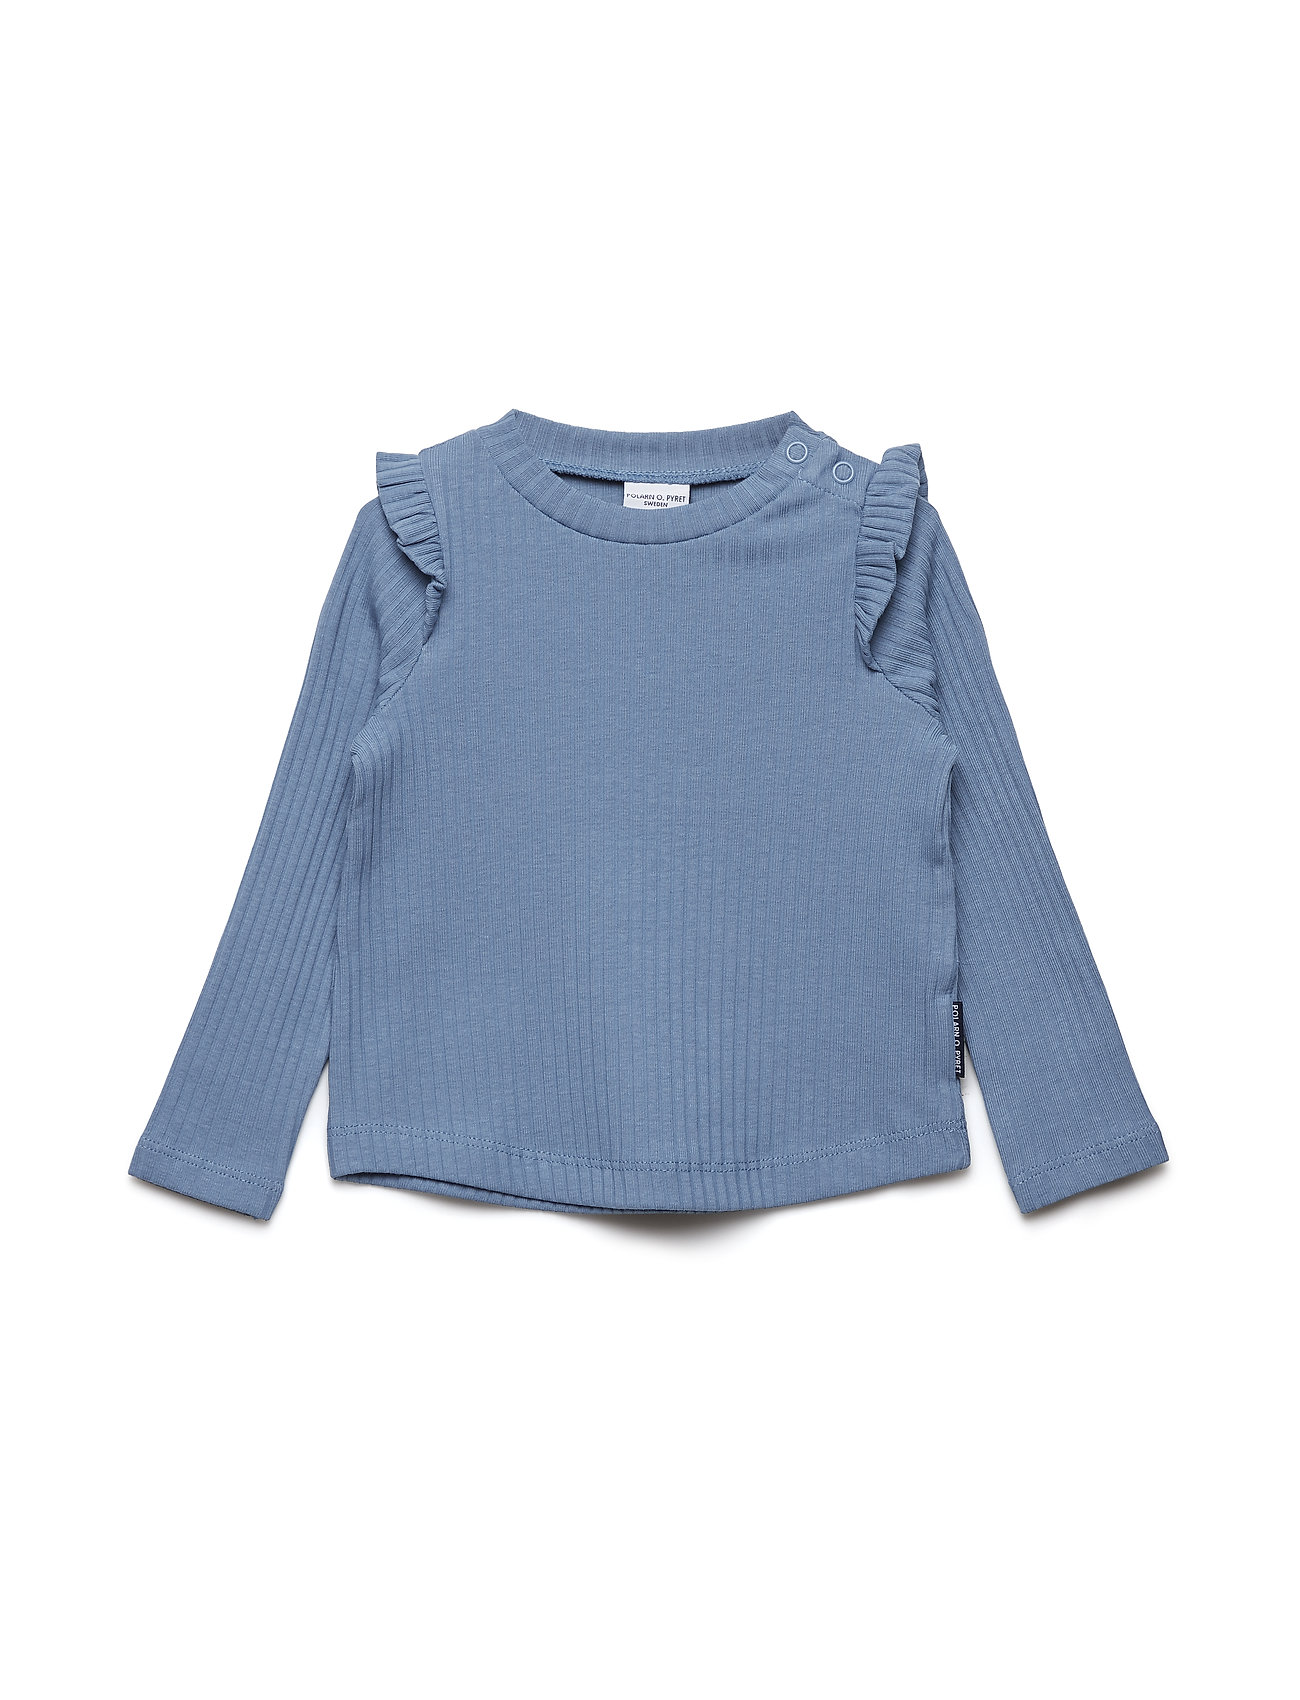 Polarn O. Pyret Top turtle neck long sleeve Baby